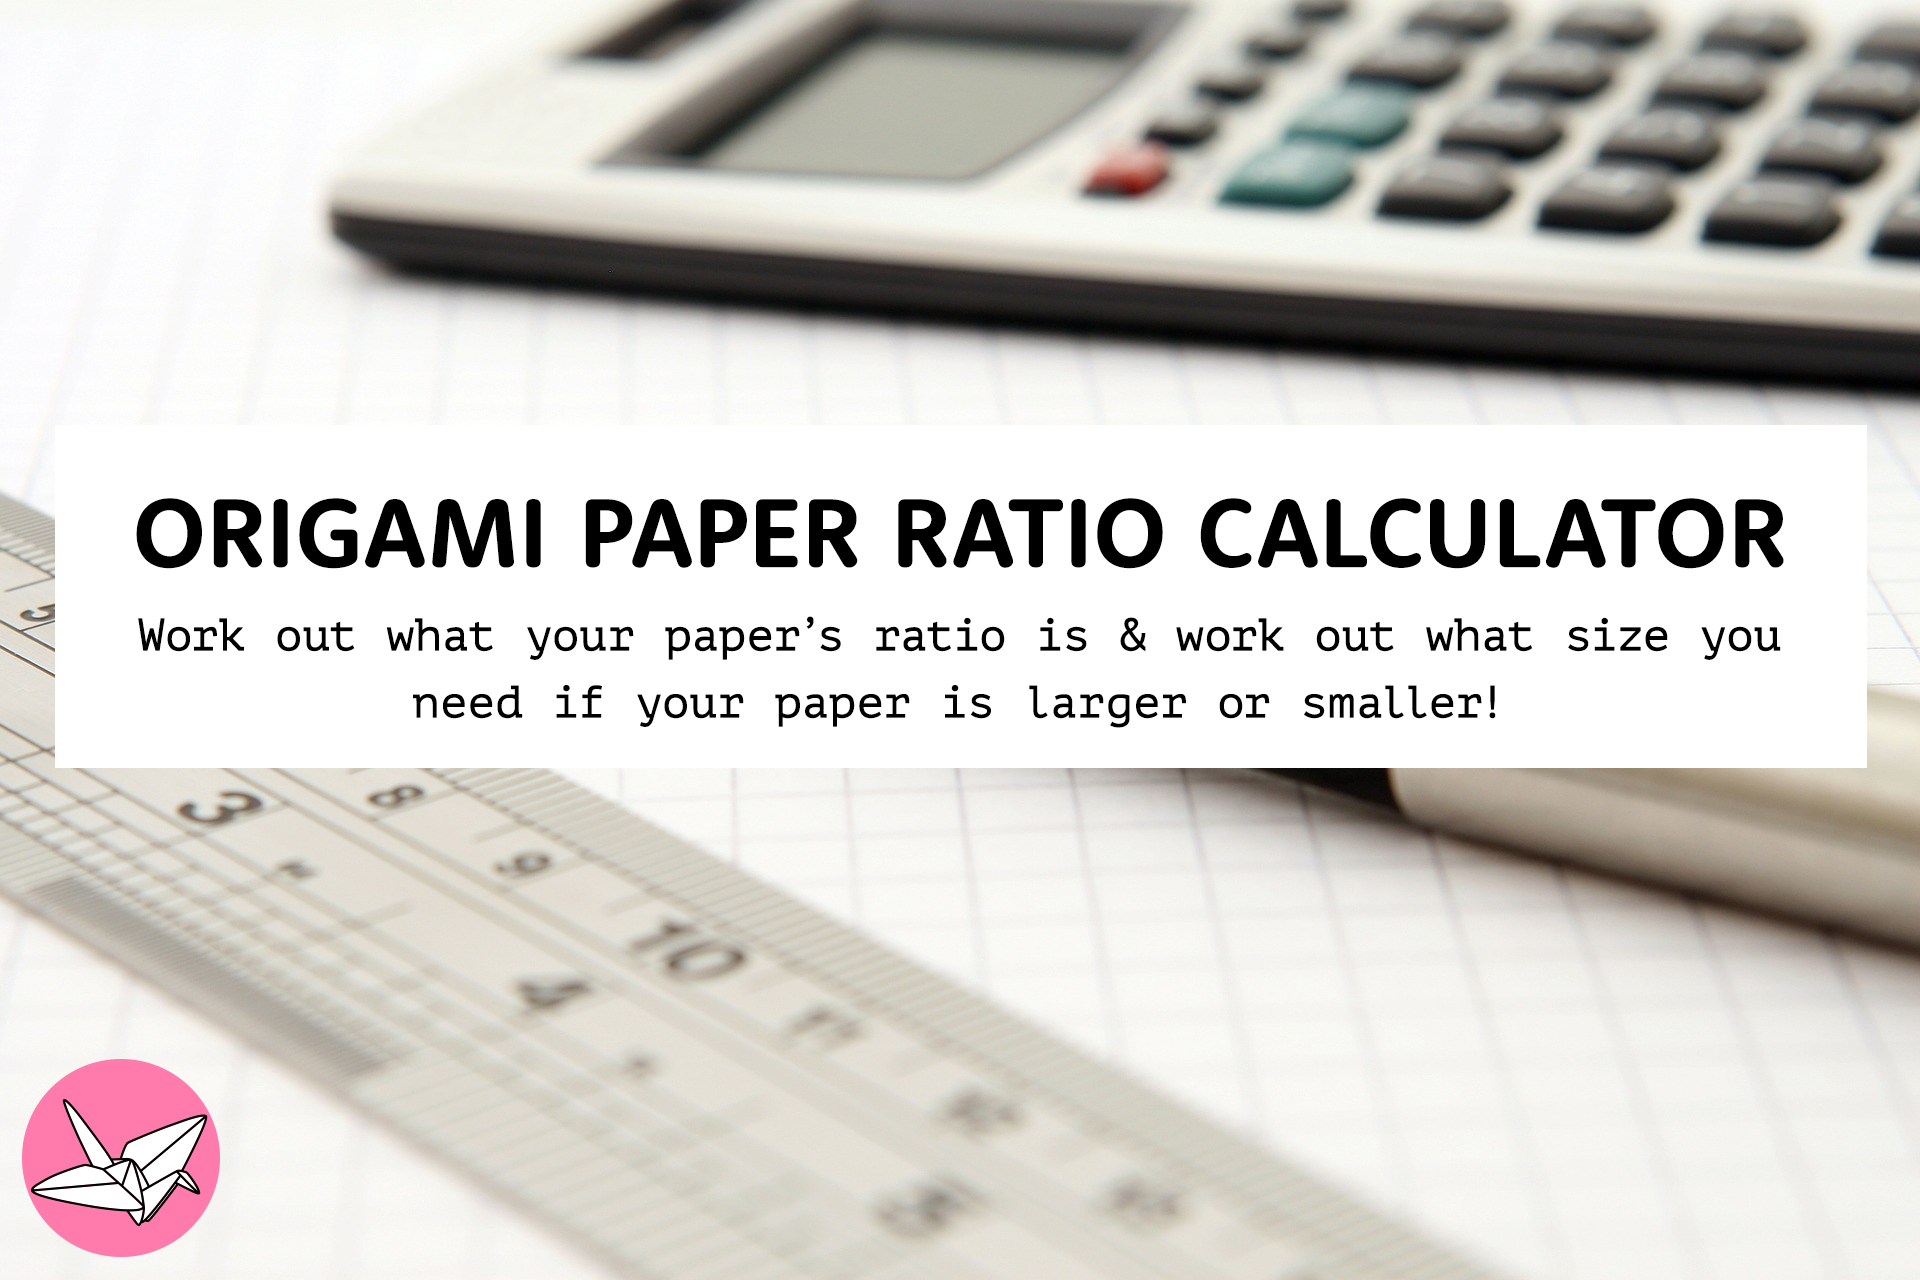 Origami Paper Ratio Calculator - Work Out What Paper Size ... - photo#29